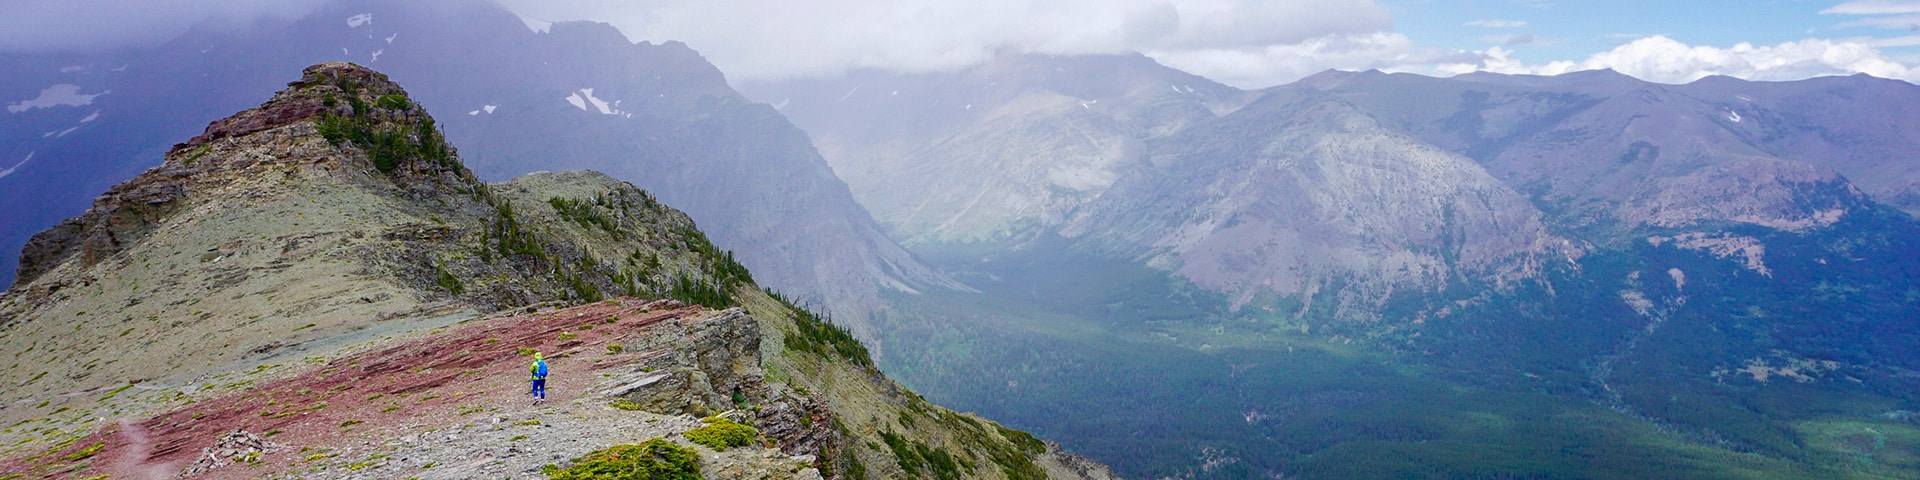 Panoramic views from the Scenic Point hike in Glacier National Park, Montana